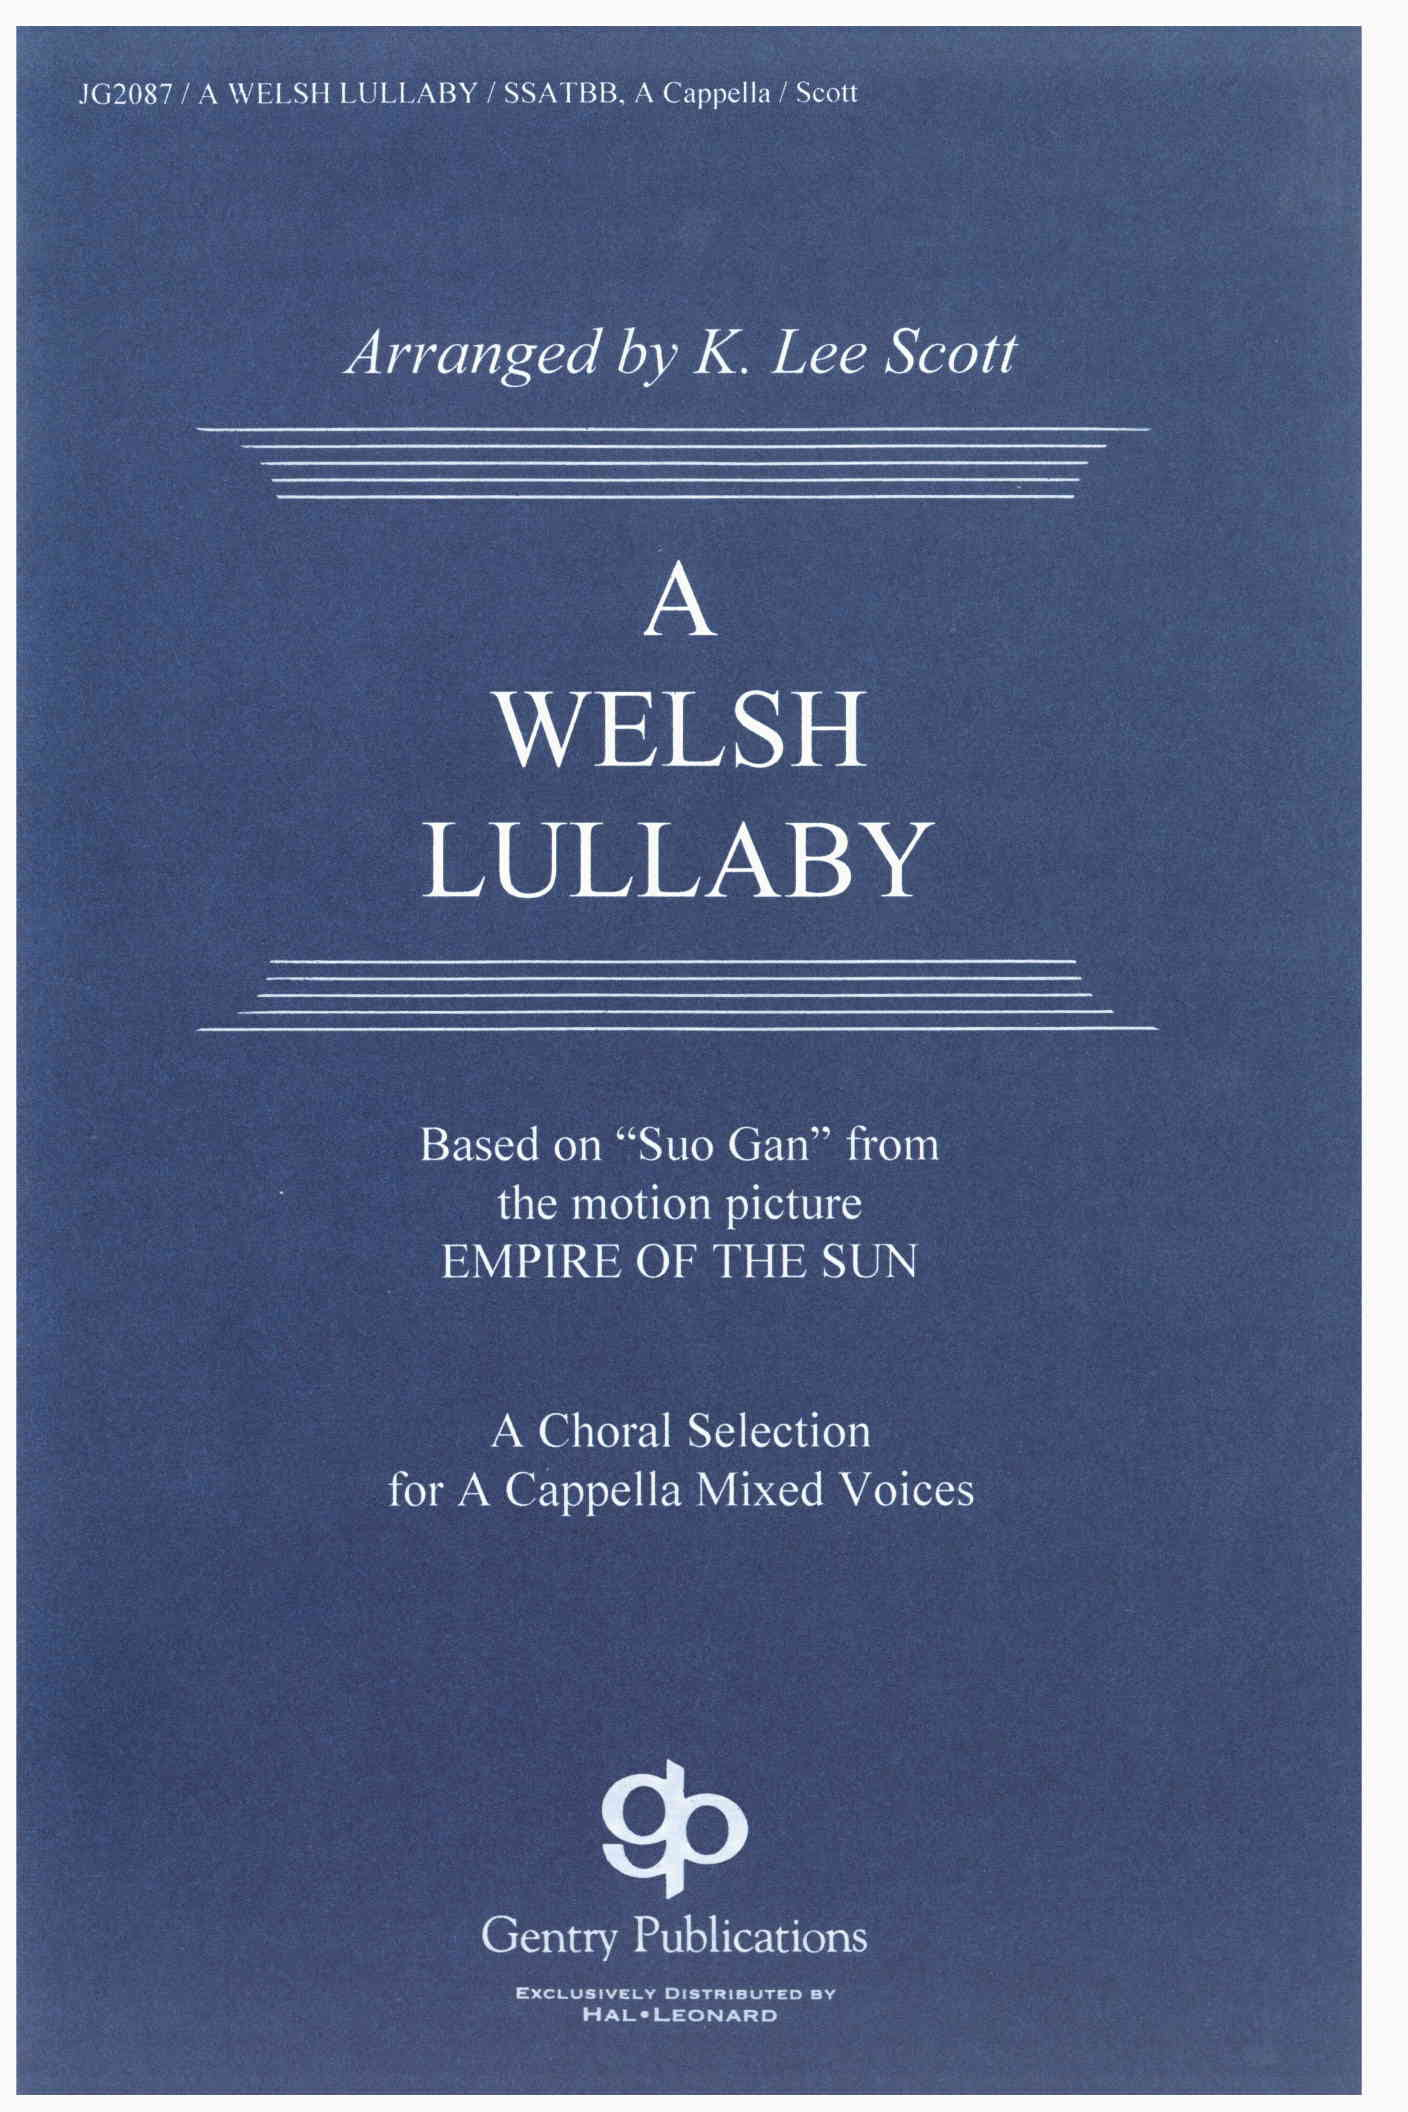 A Welsh Lullaby